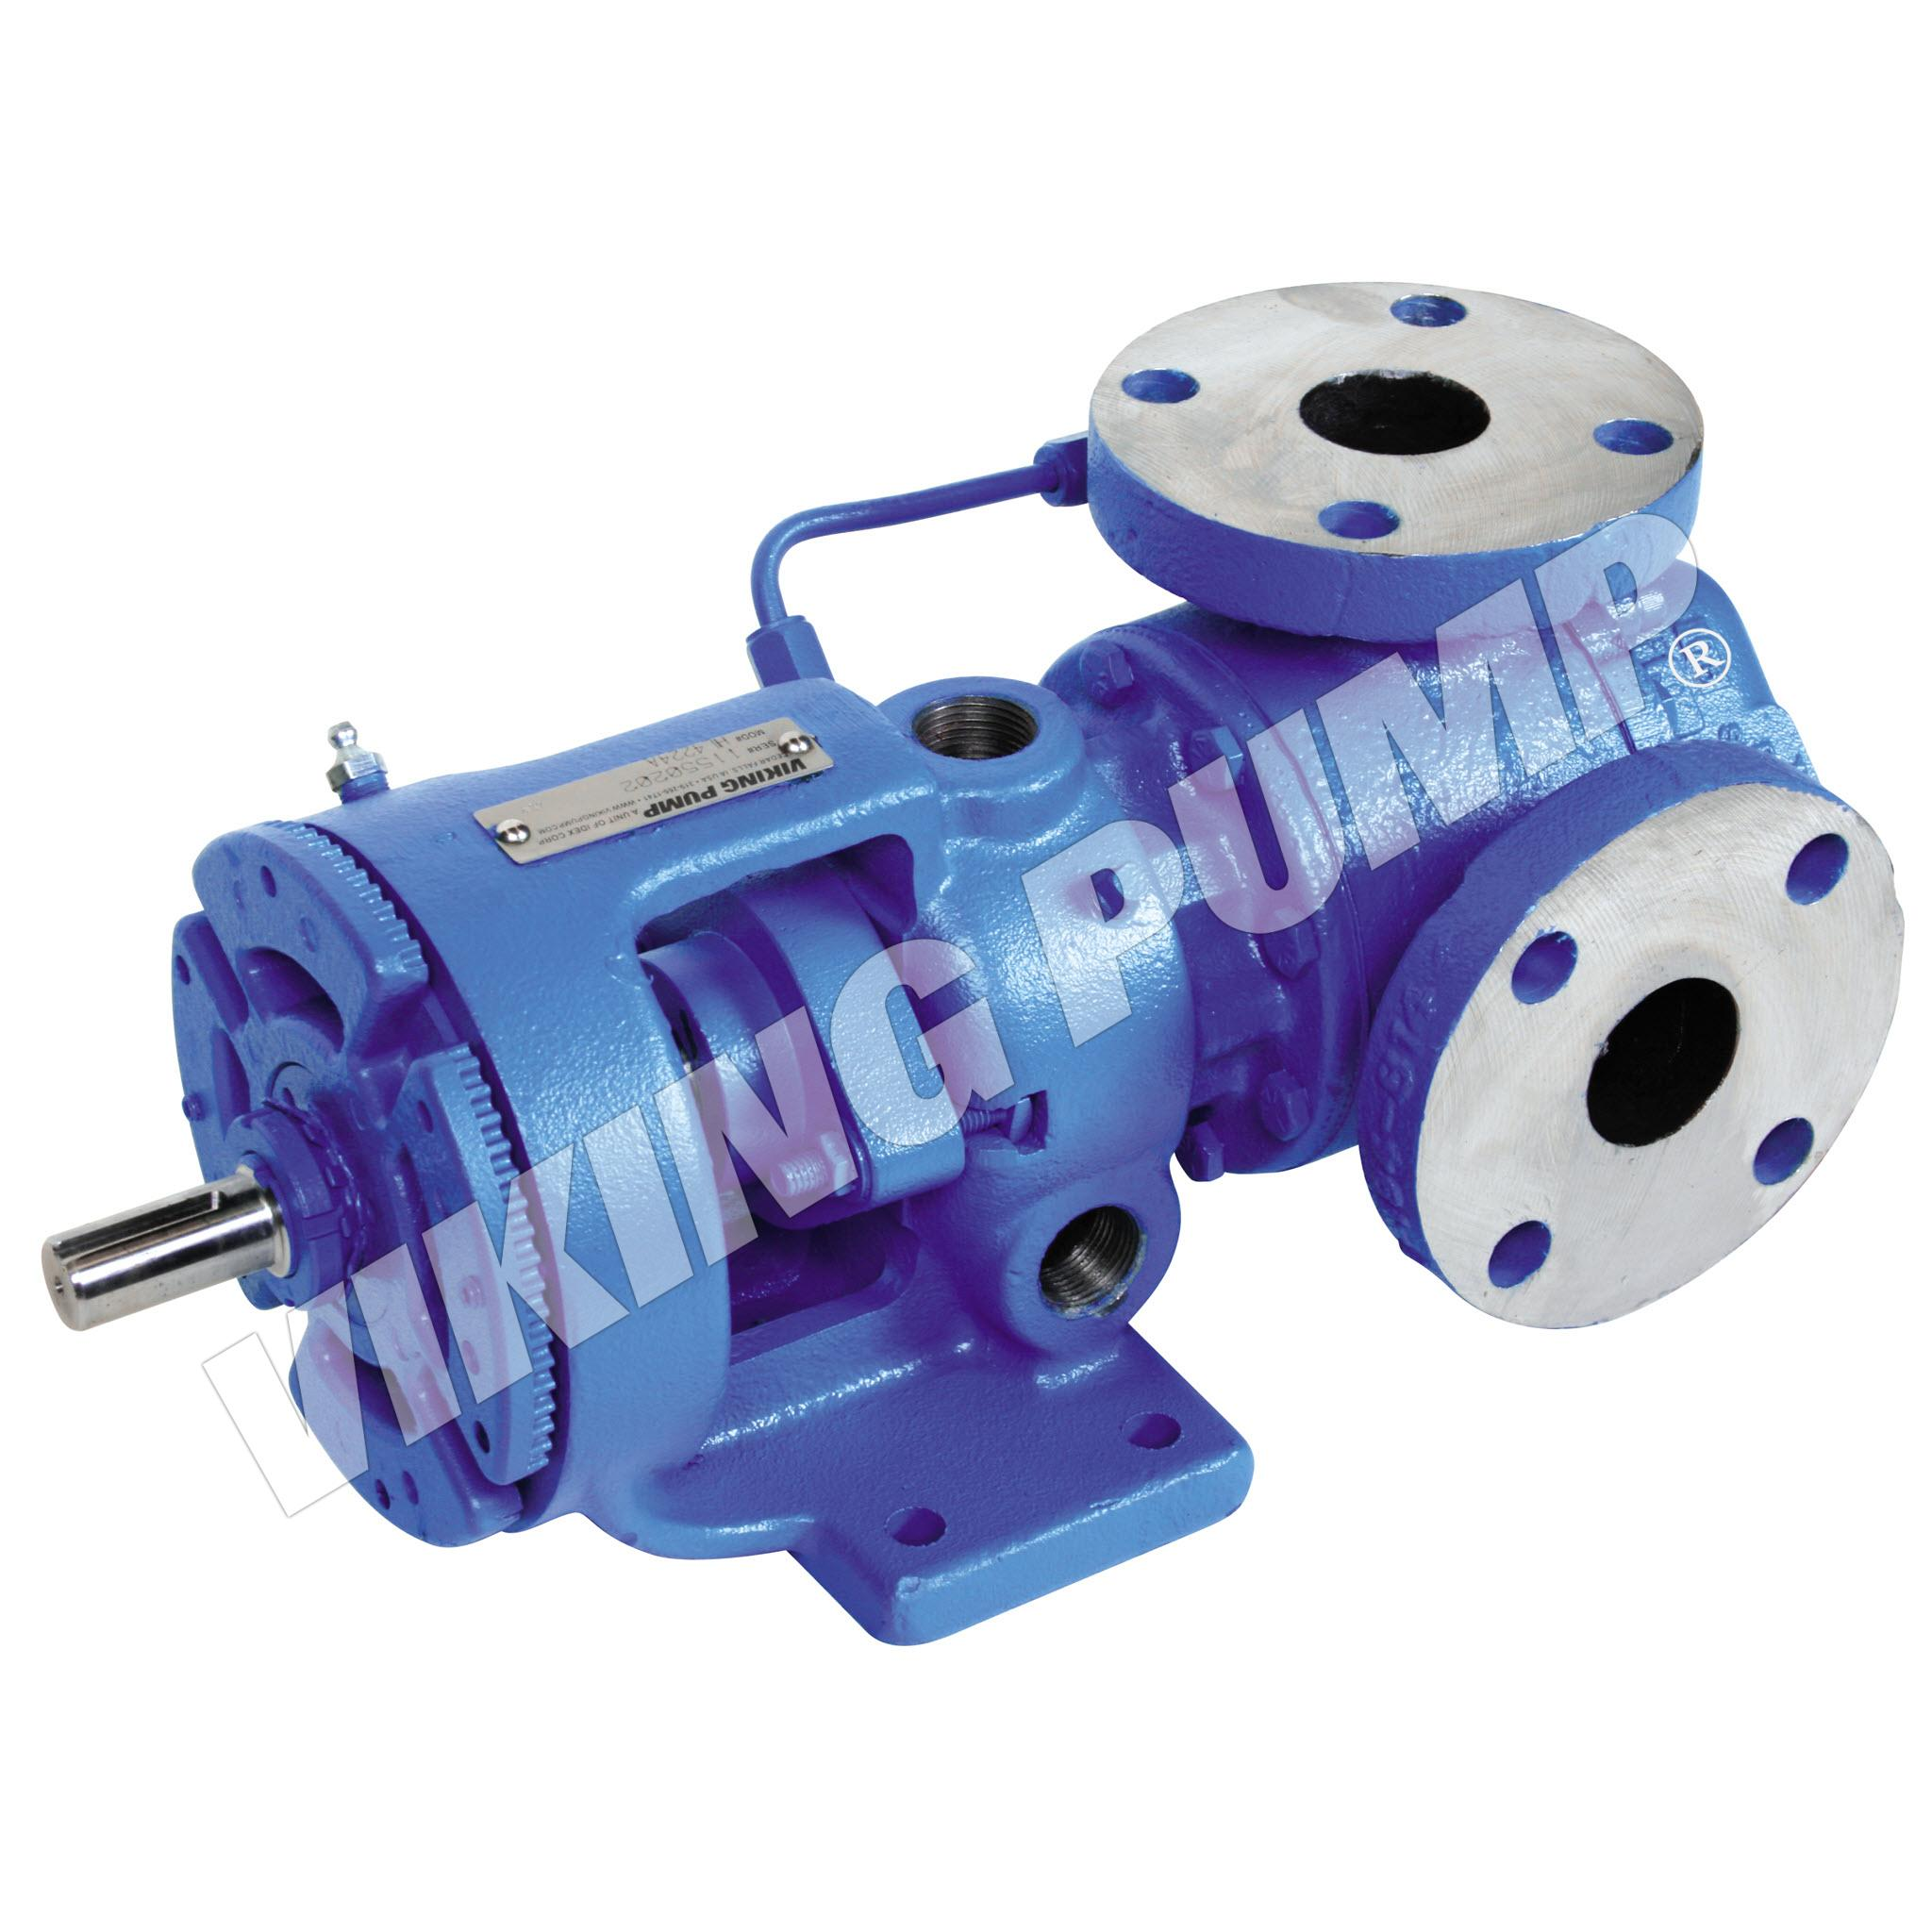 Model HL4224A, Foot Mounted, Mechanical Seal, Relief Valve, Flange Port Pump